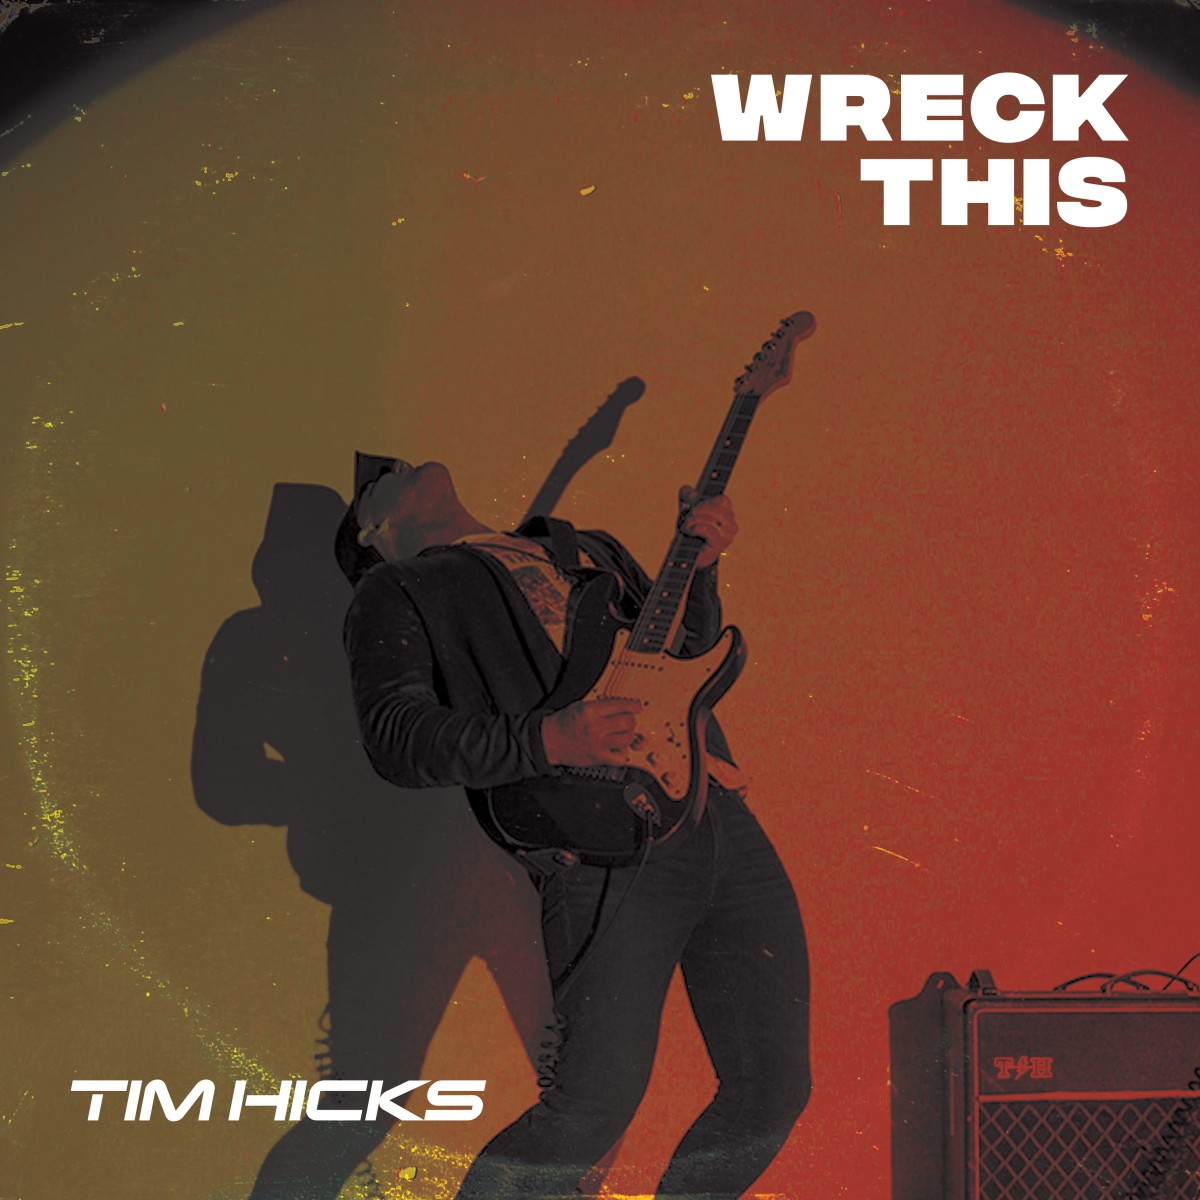 Tim Hicks Announces Wreck This EP Available On Digital Platforms June 26